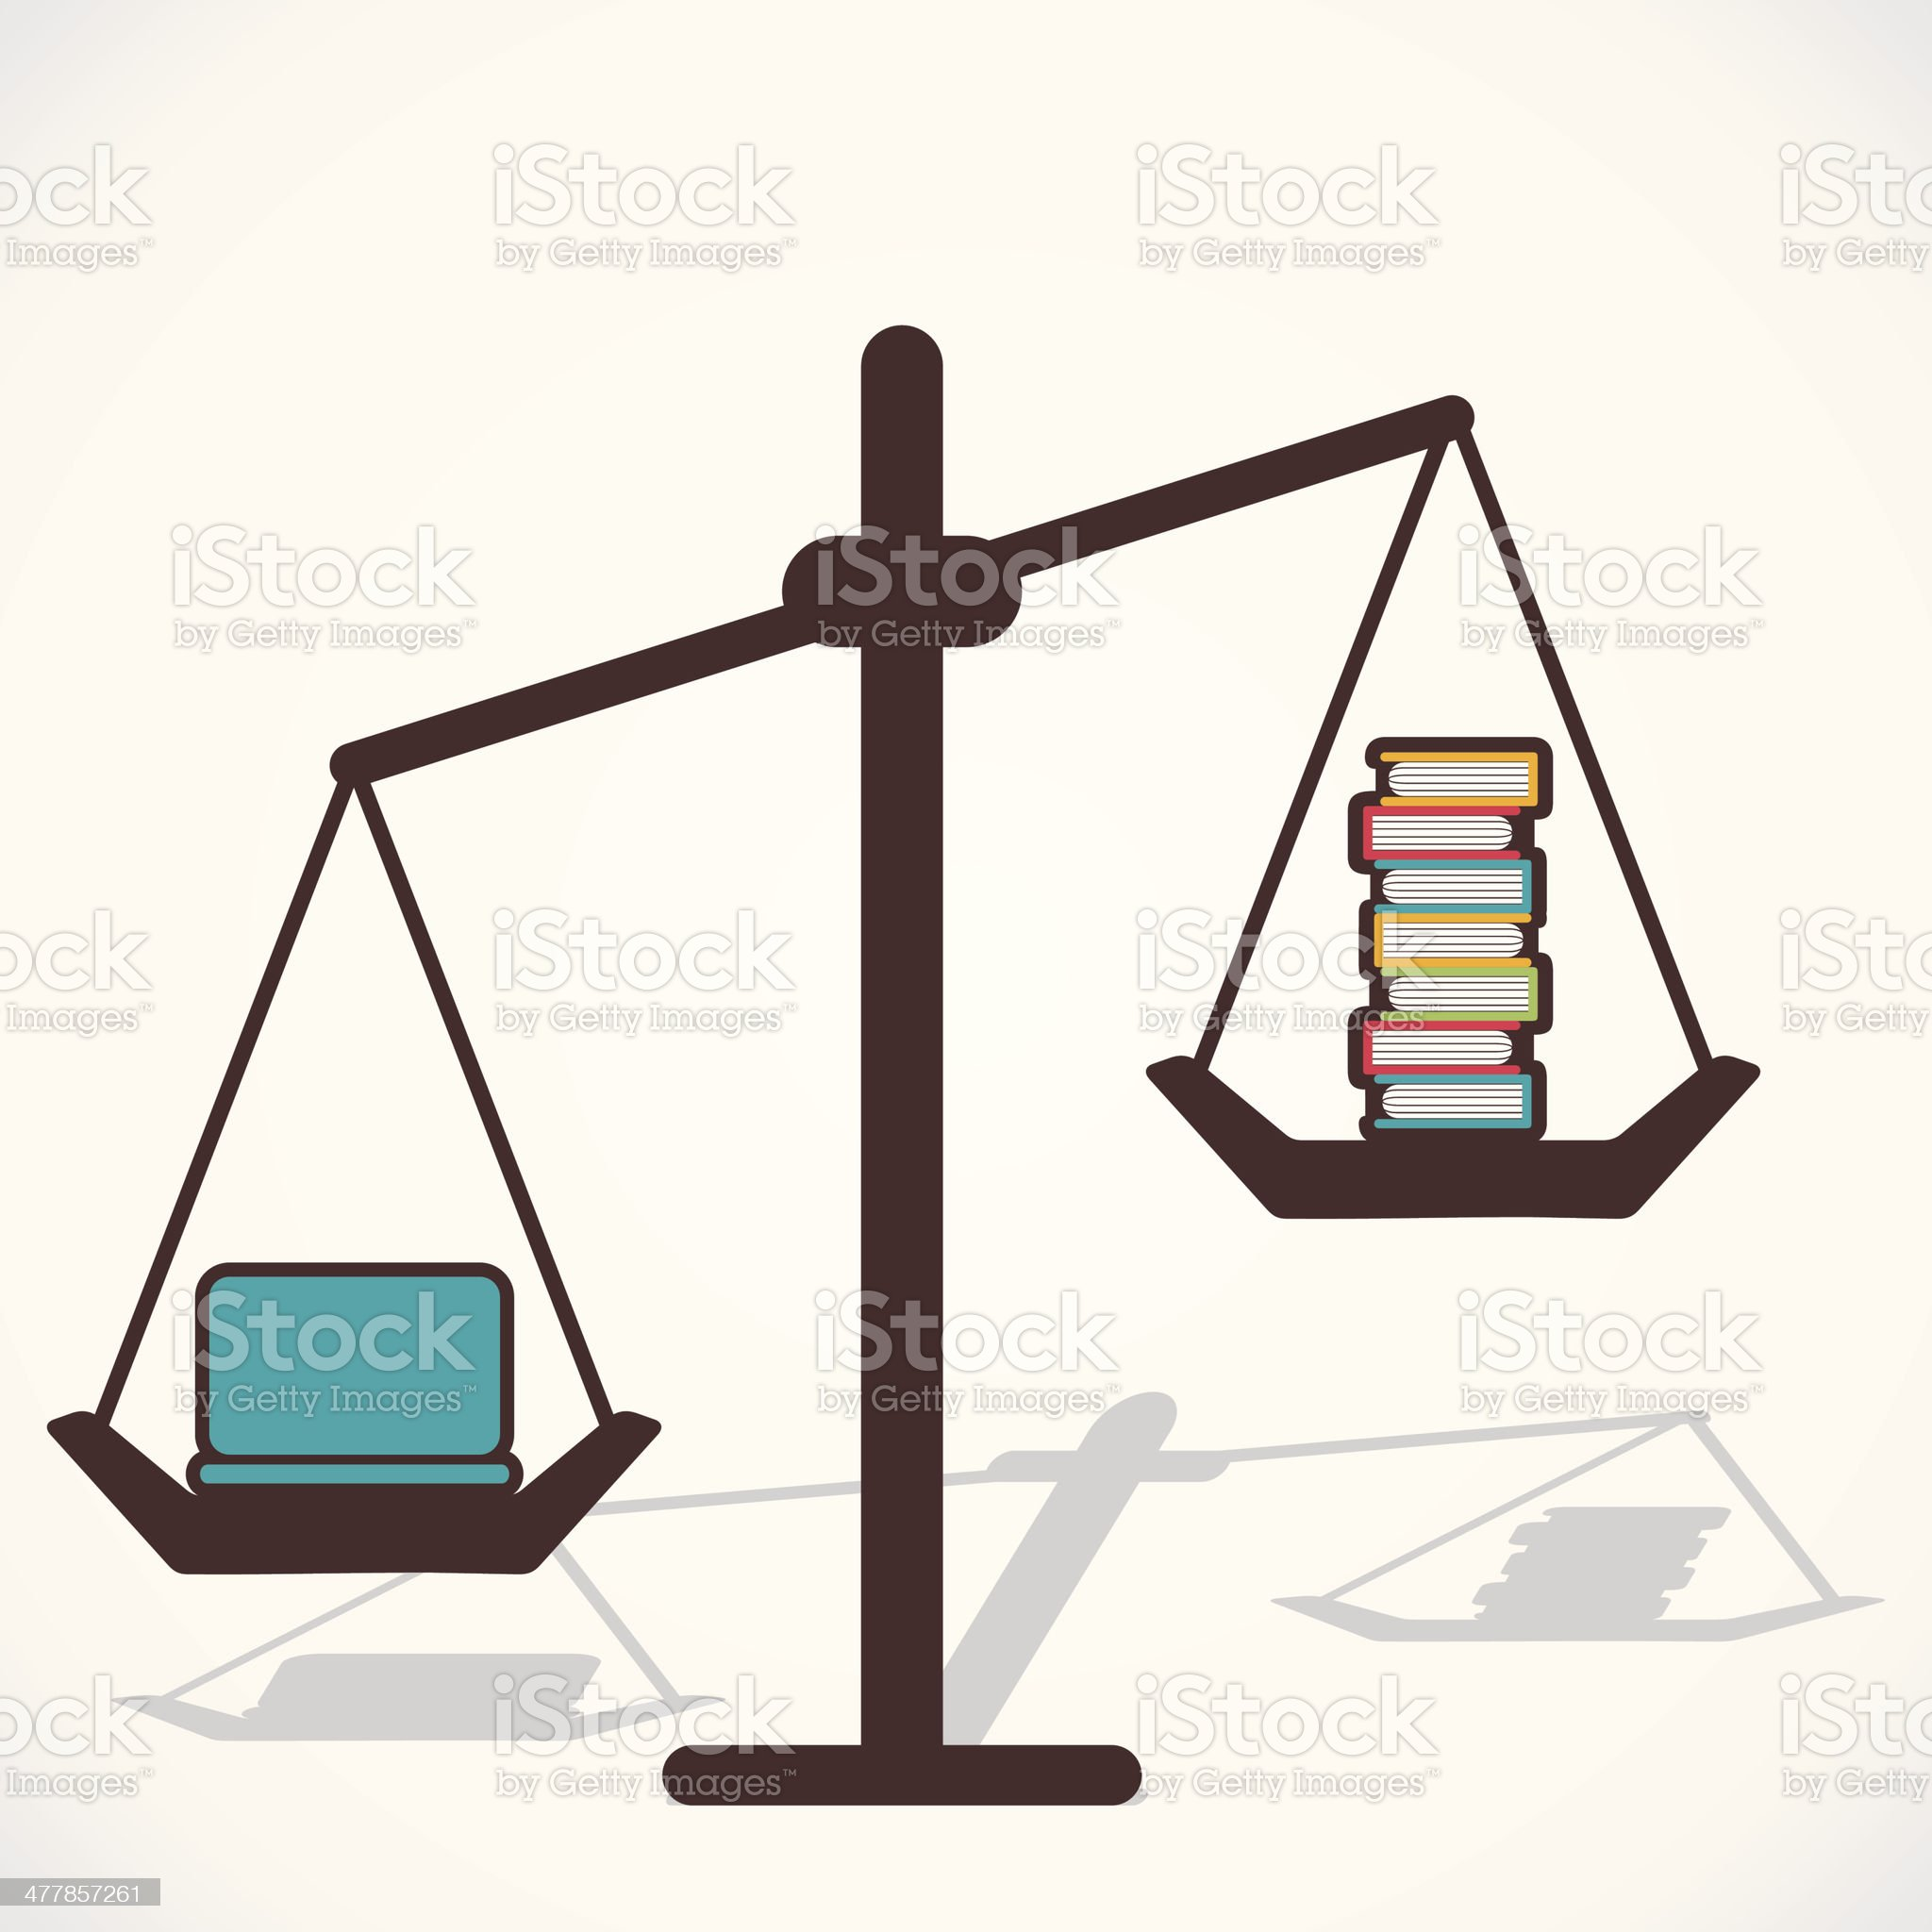 compare laptop and book royalty-free stock vector art